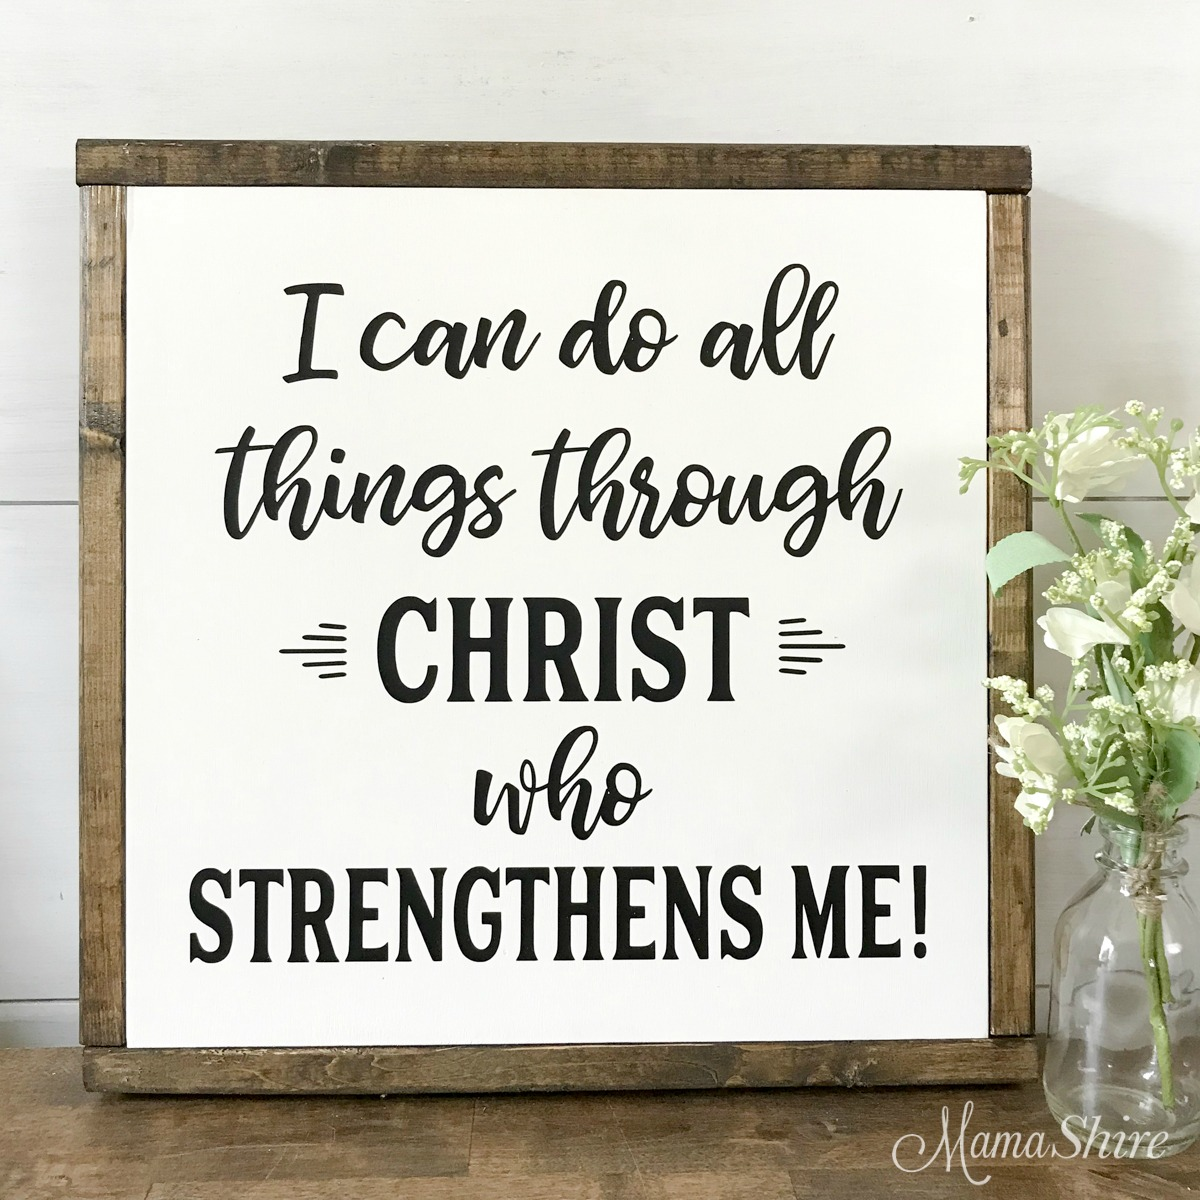 Wood sign of I can do all things through Christ who strengthens me.